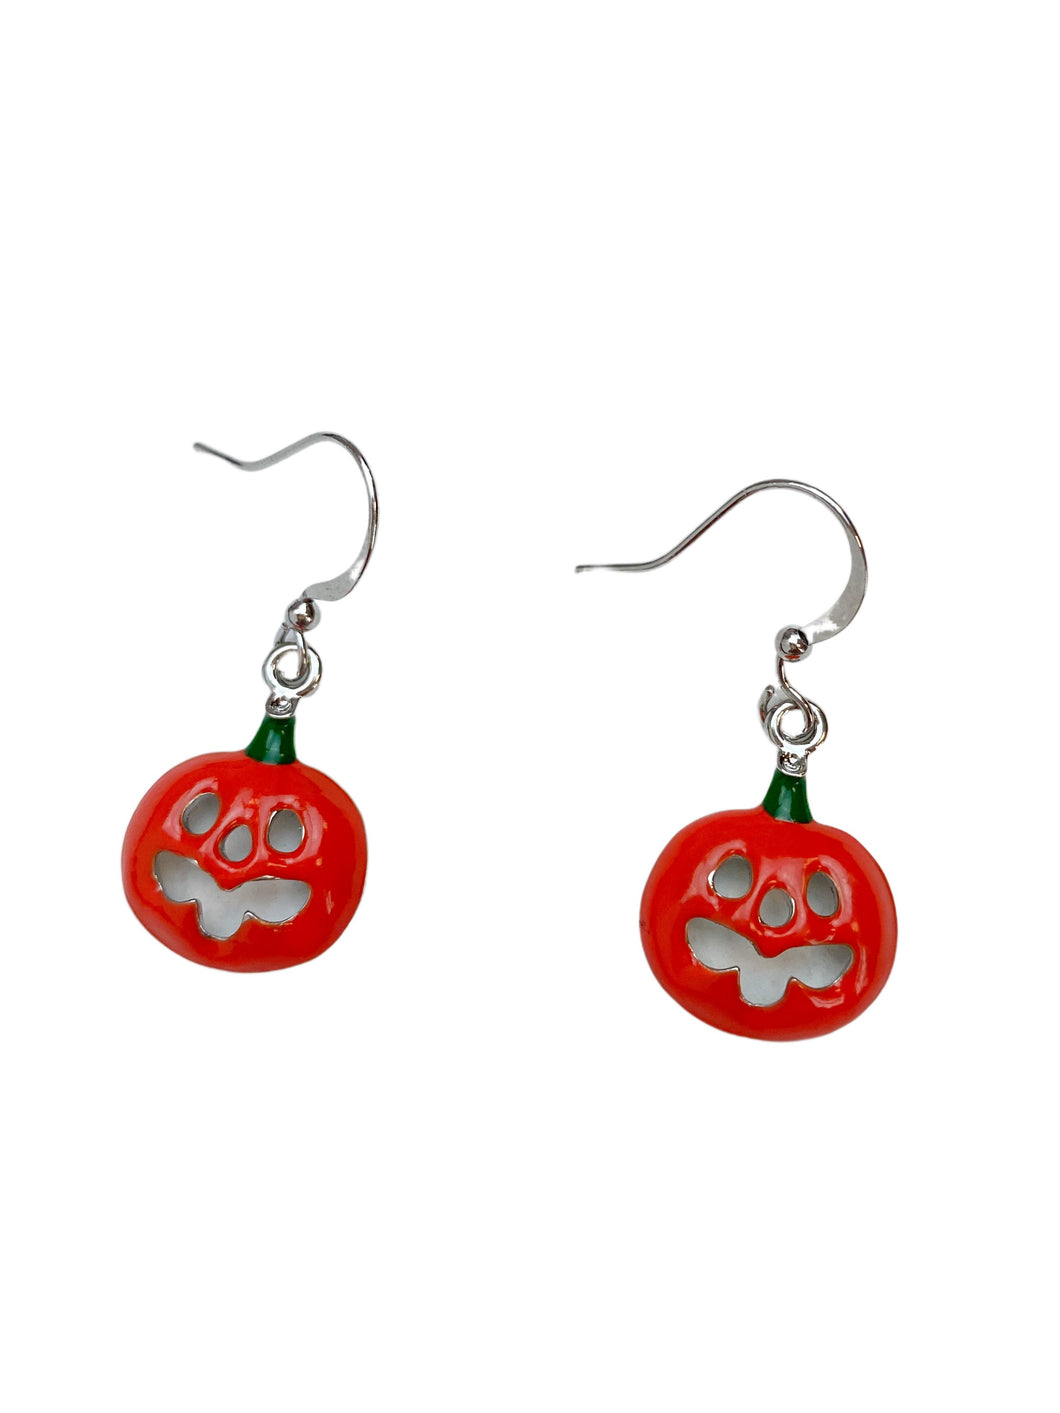 Dangling Jacks Earrings